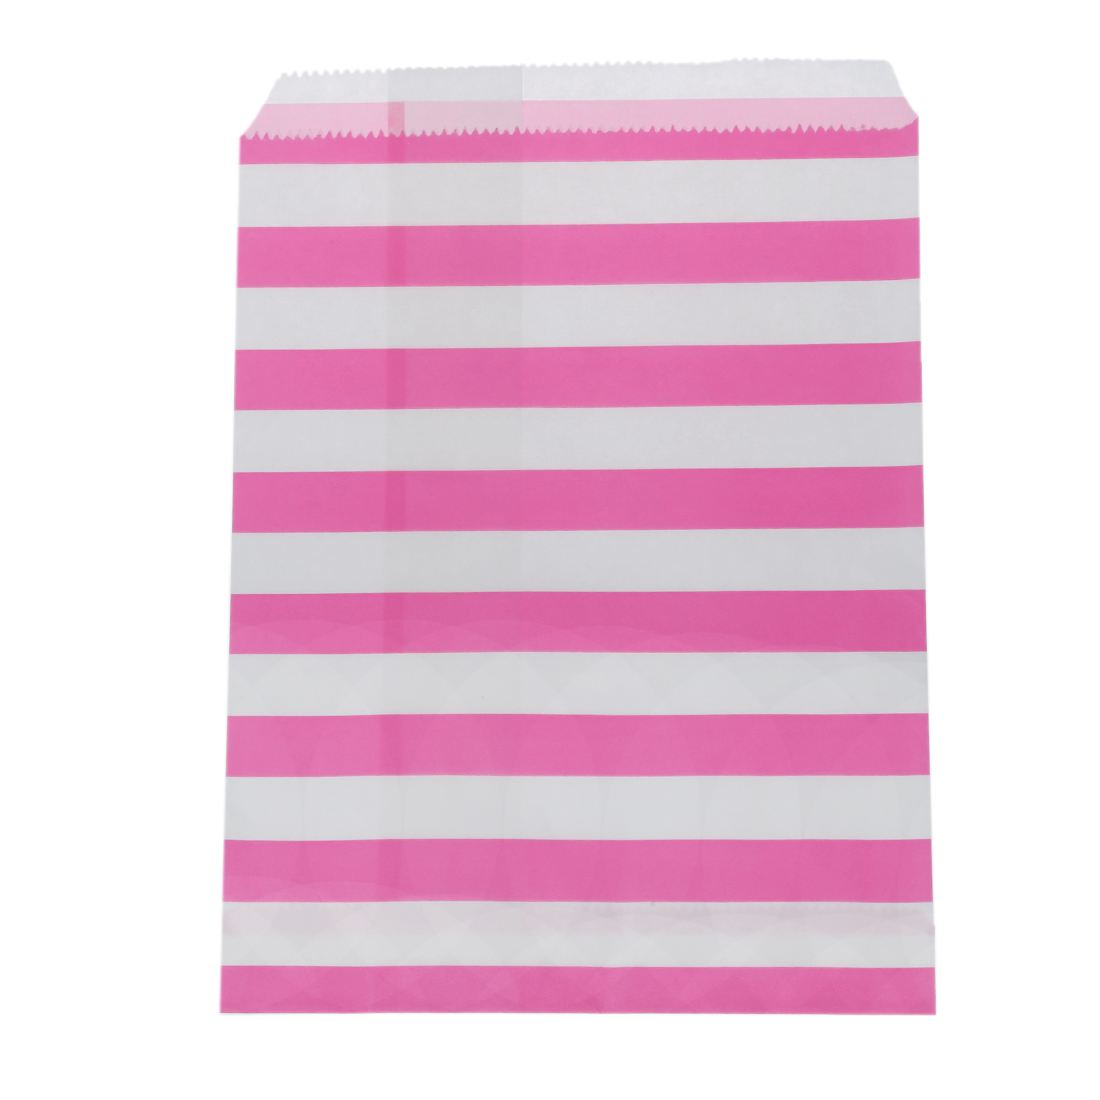 25pcs Striped printed Grease proof Hamburger Fried Chicken Food Paper Bag For Wedding Party pink